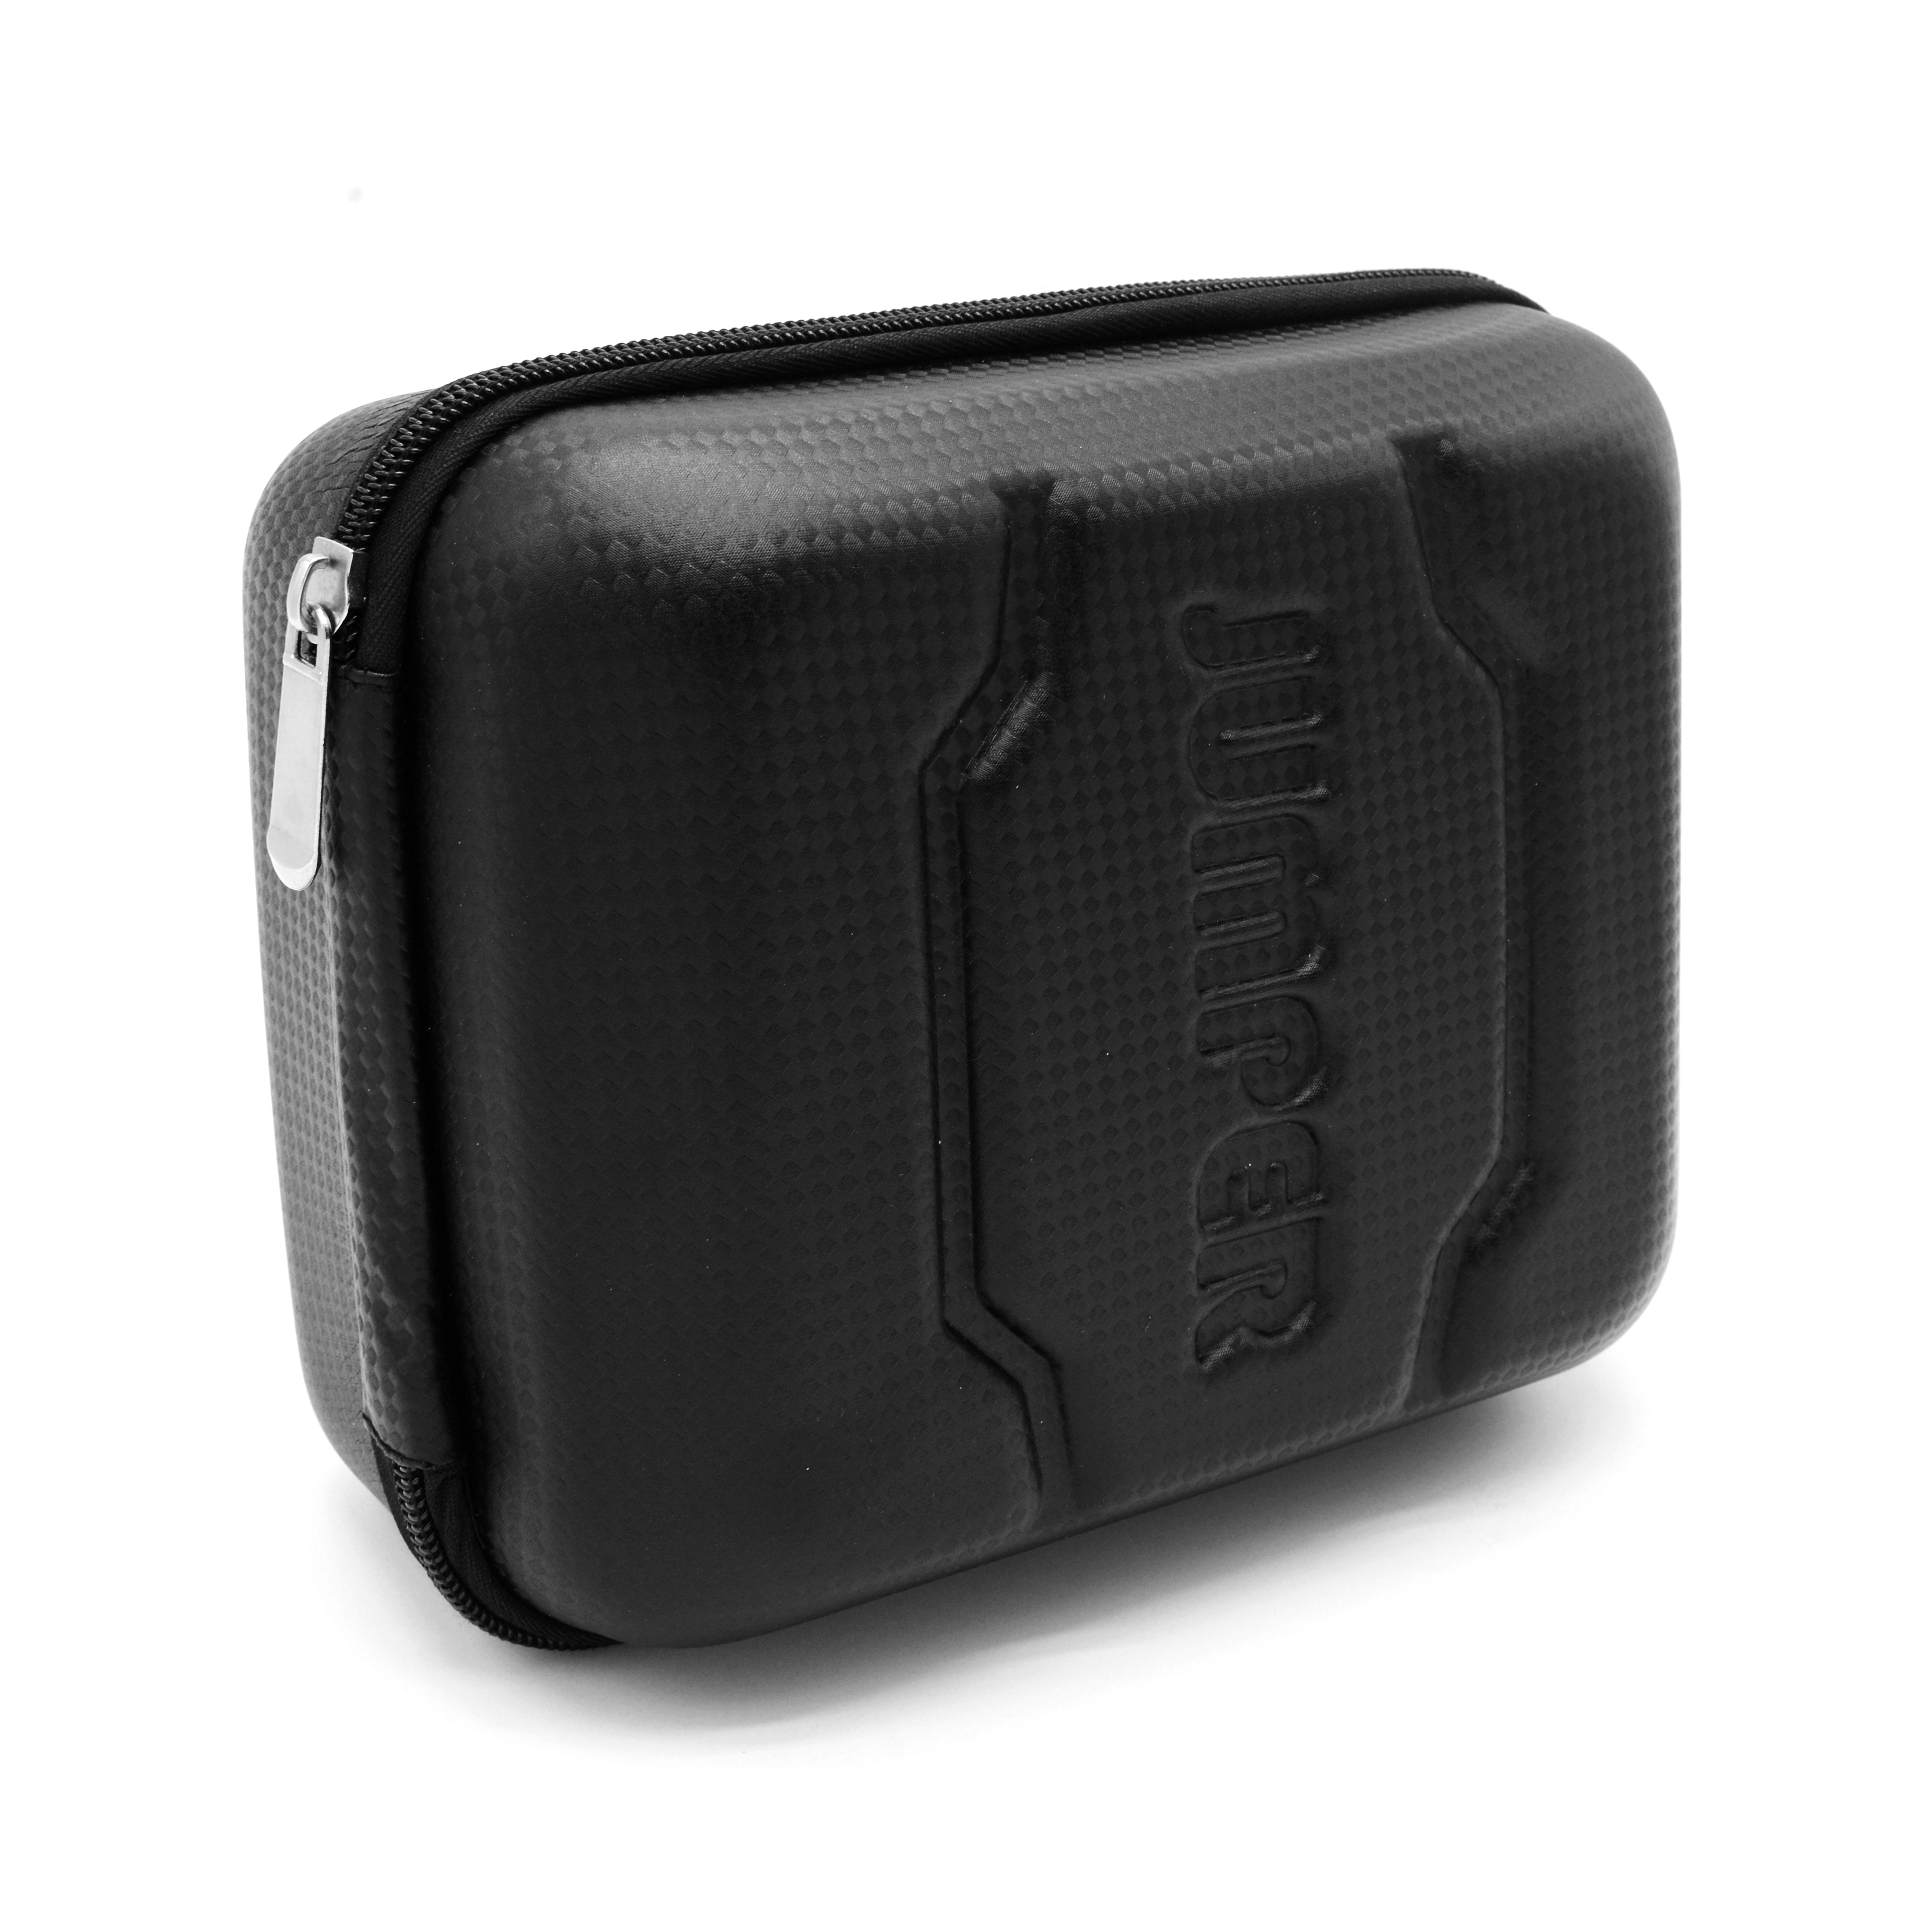 Jumper Portable Carring Case Remote Control Box for T8 T12 Series Radios